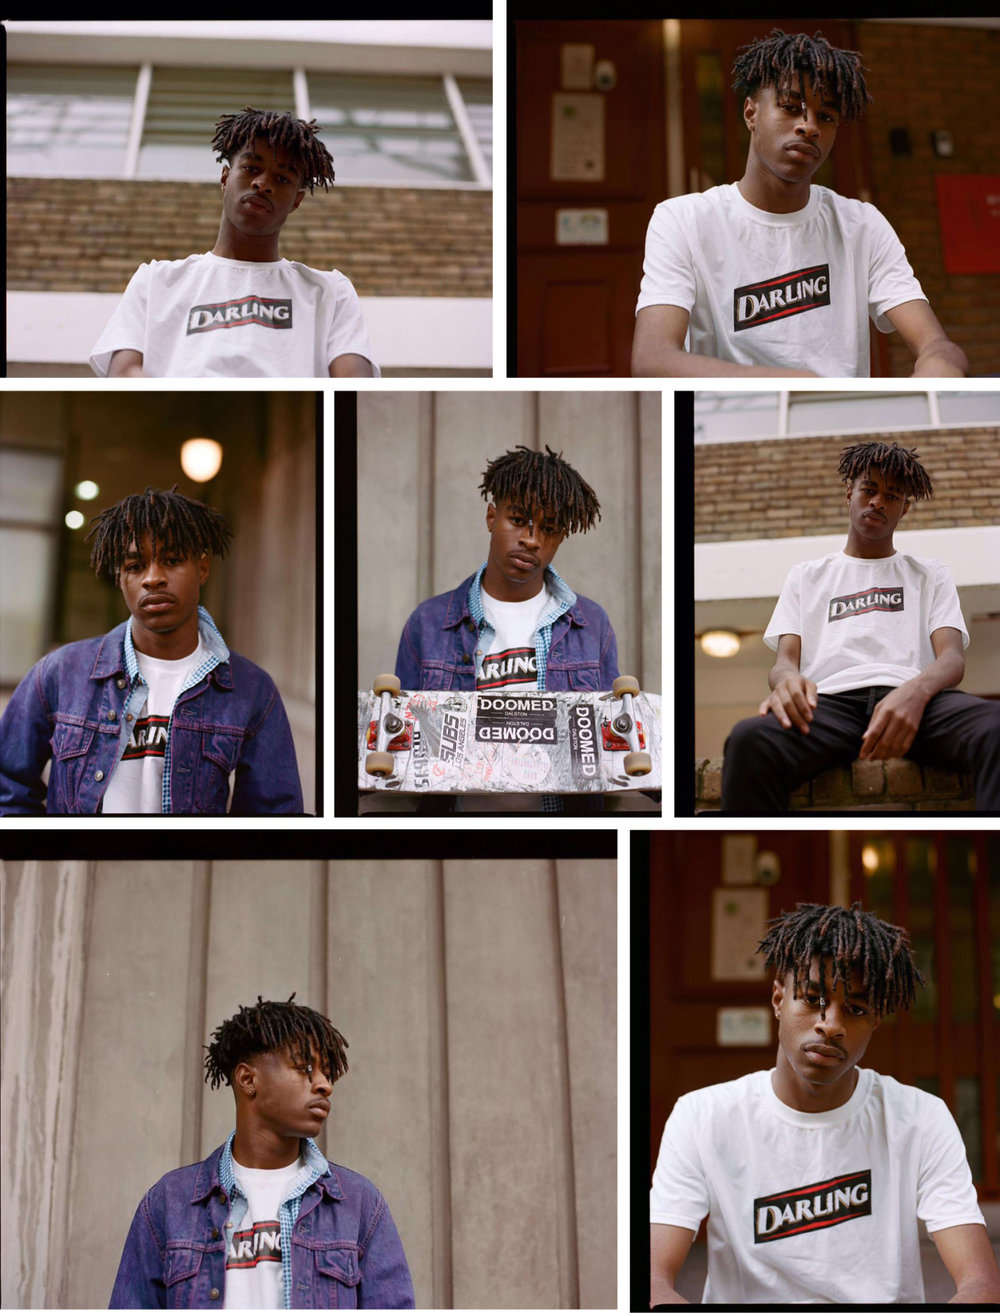 We feel privileged to have the photographer Rosie Matheson shoot Ethan Richards in our Darling tee.  Check out Rosie's website  here  and her Instagram  here , whilst you can also check out Ethan's Instagram  here .